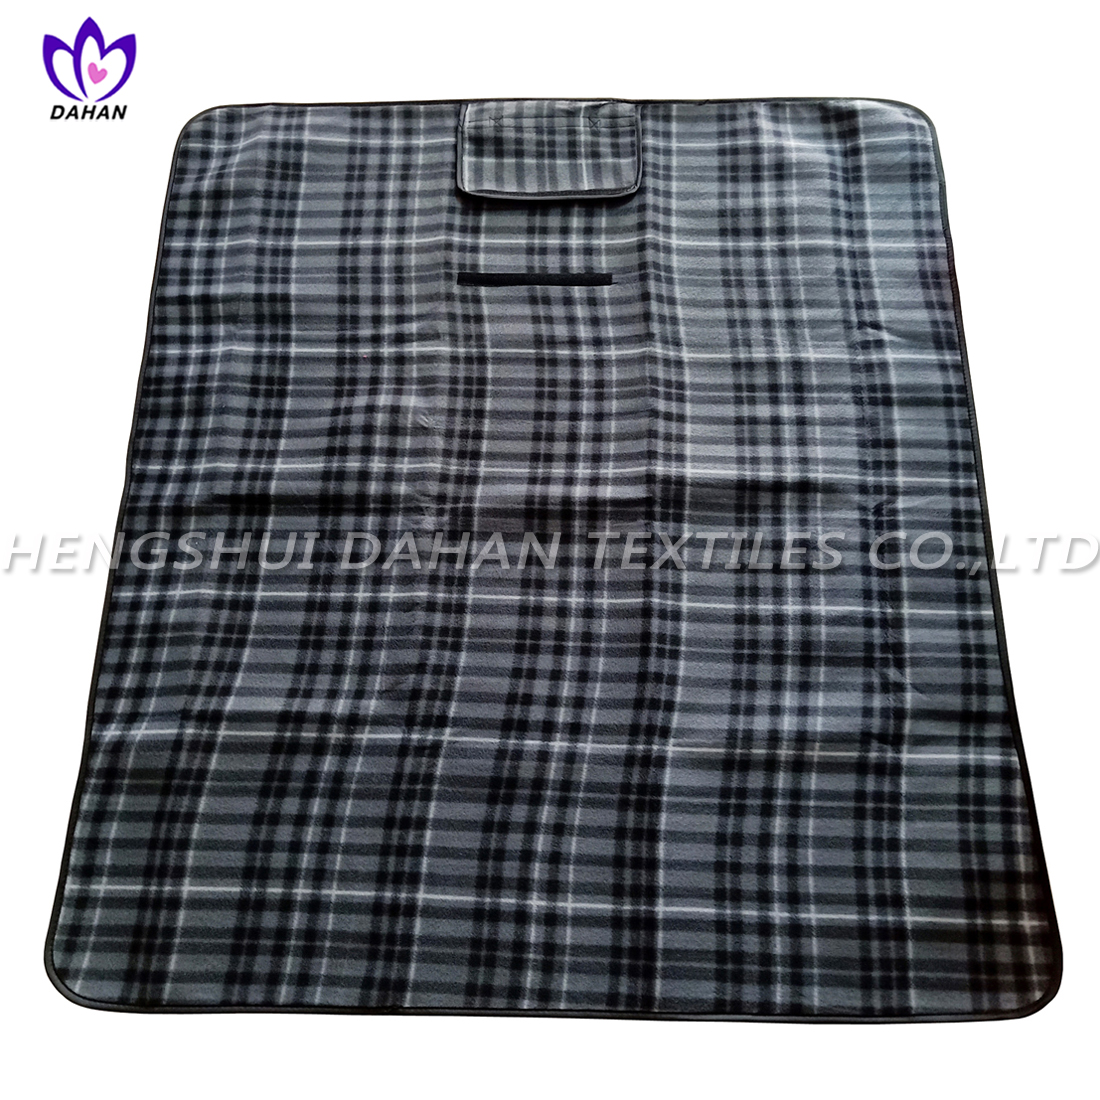 Picnic blanket waterproof picnic mat with printing.PM18